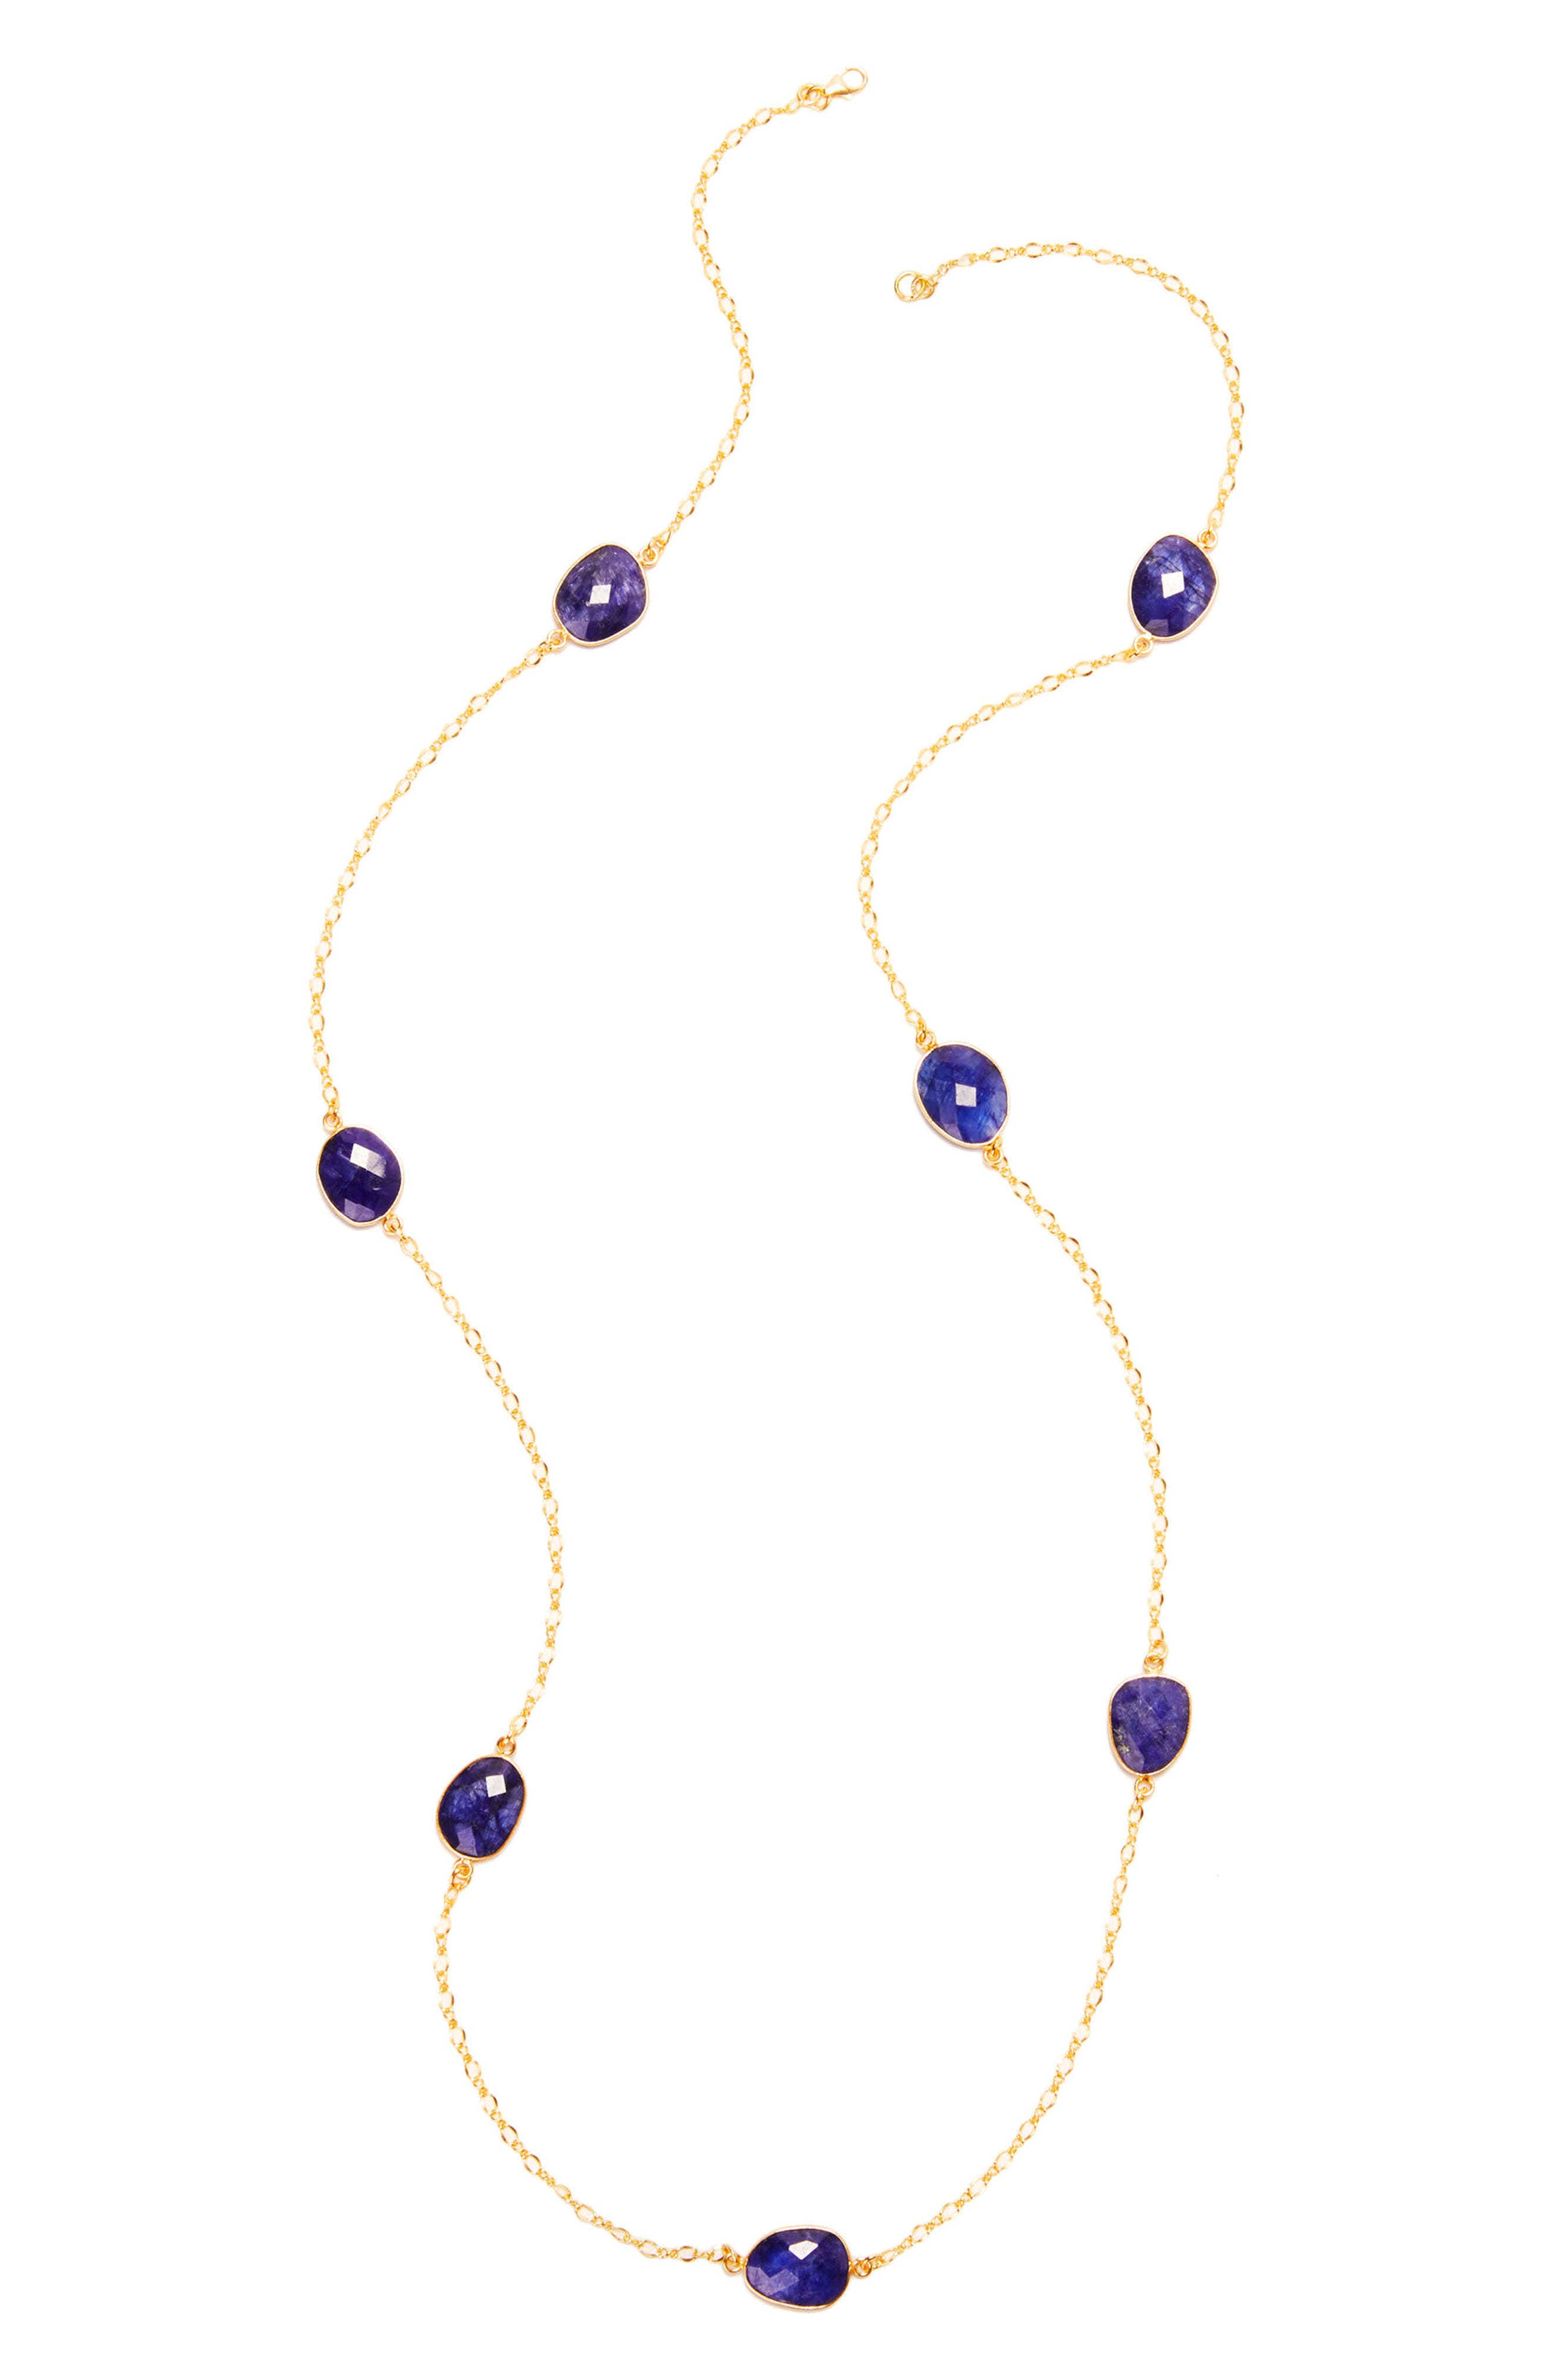 Laguna Semiprecious Stone Station Necklace,                             Main thumbnail 1, color,                             Sapphire